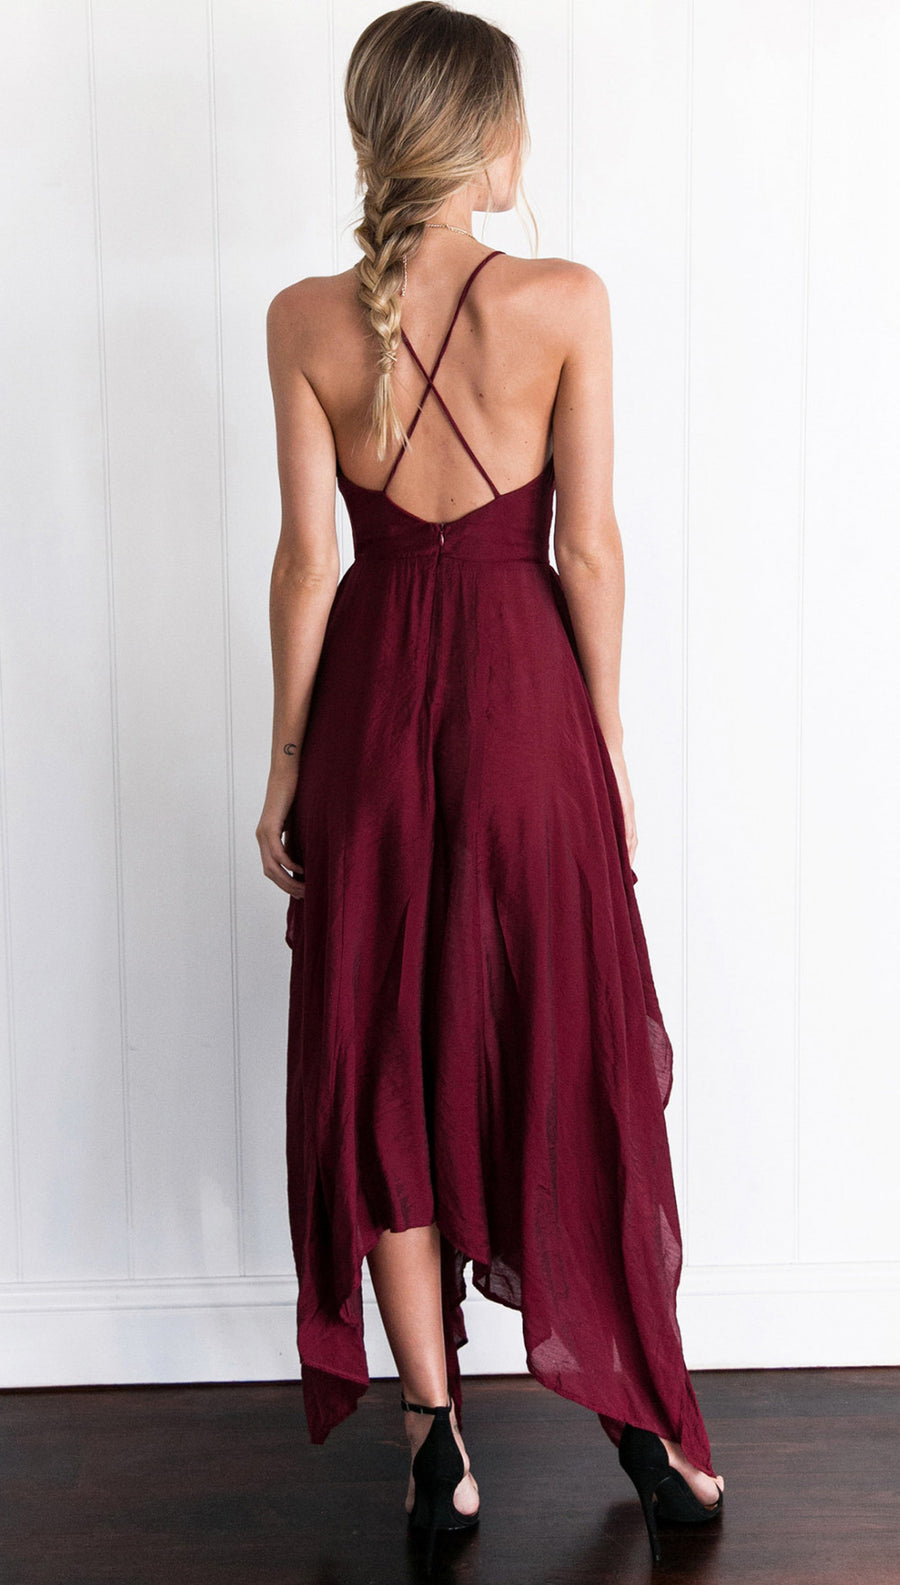 2018 Burgundy Prom Dress Modest Cheap Simple Long Prom Dress #VB1903